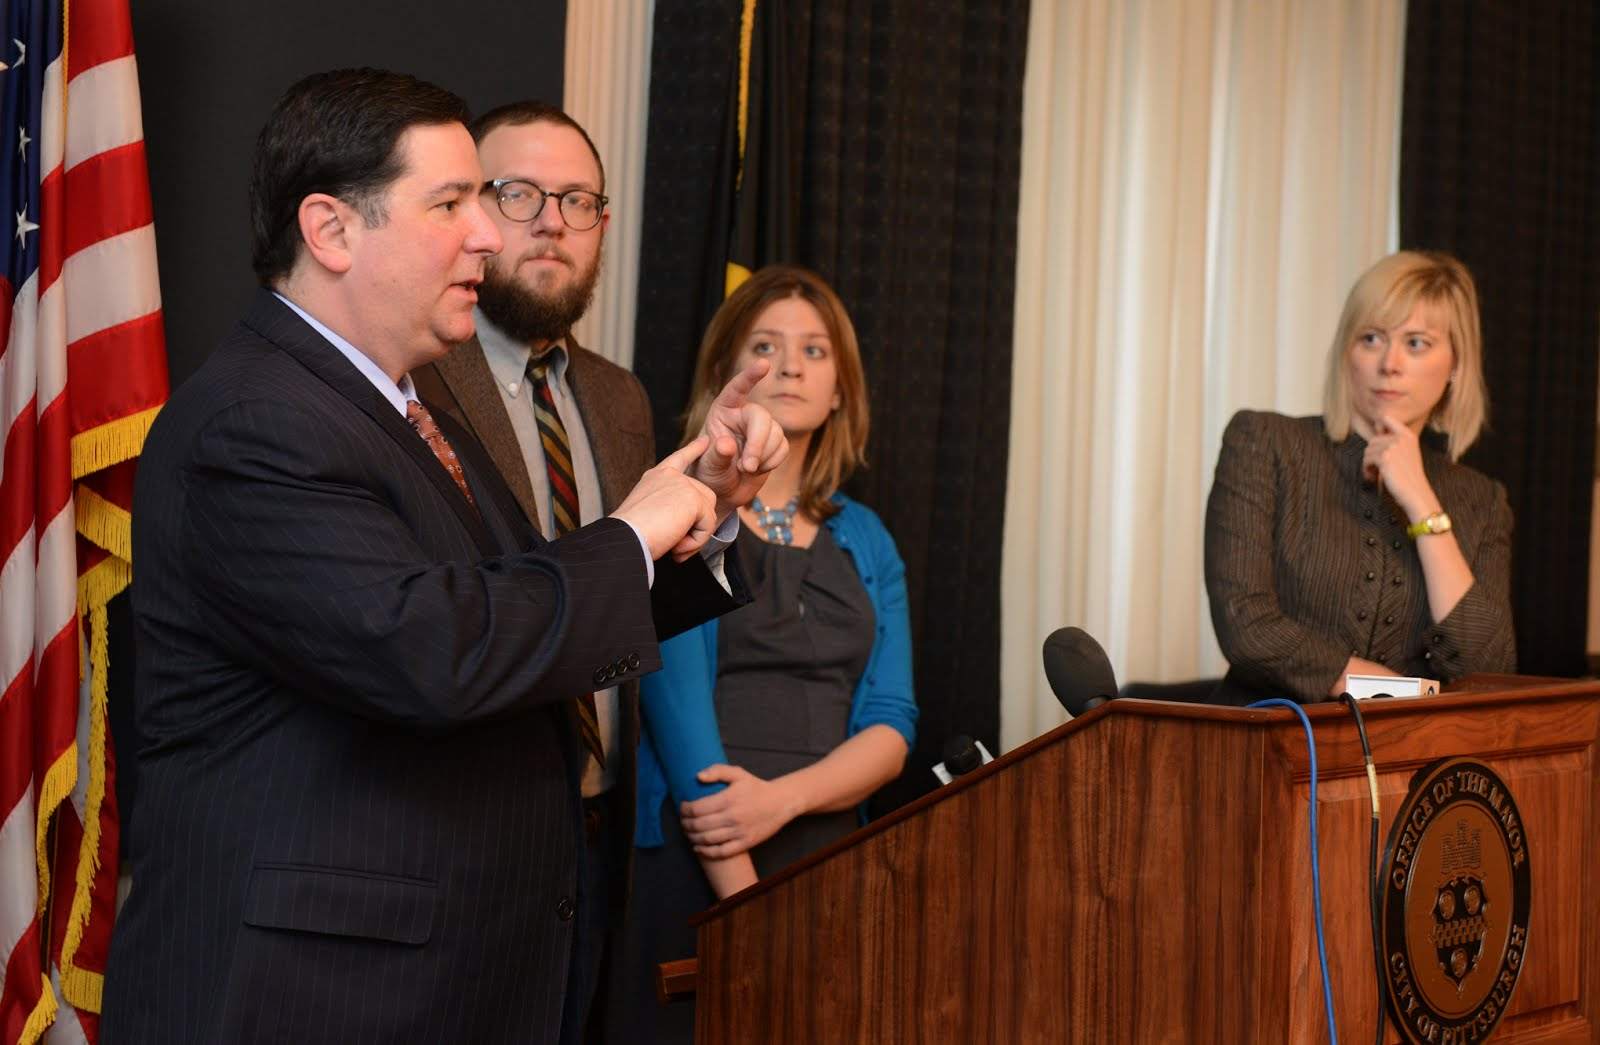 Mayor Peduto, Pittsburg open data